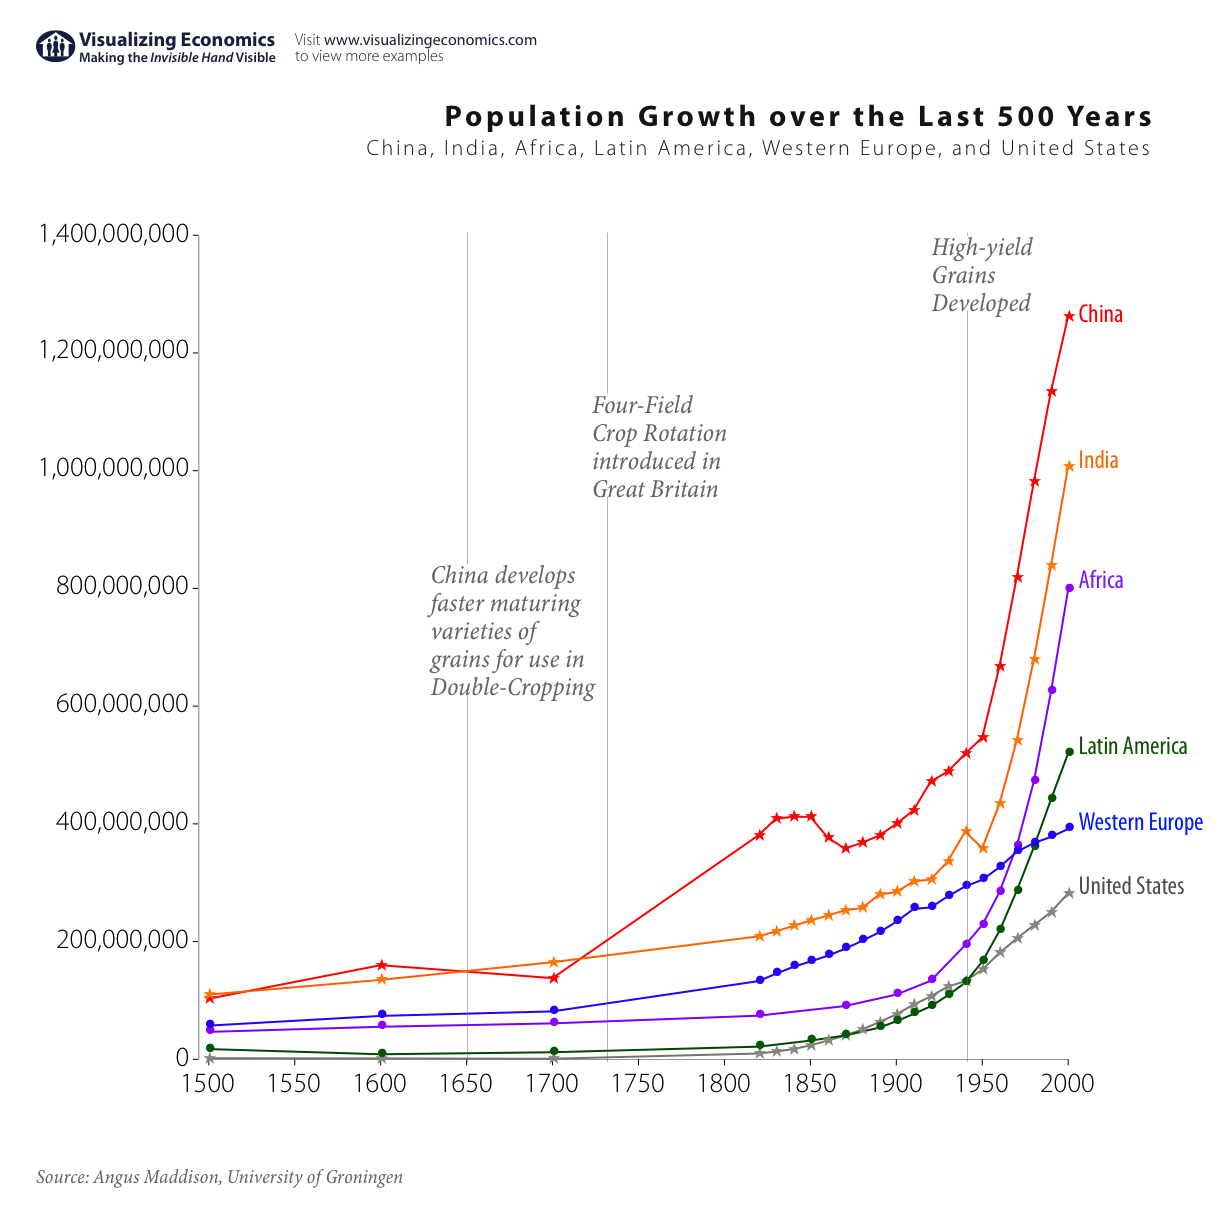 Population Growth over the Last 500 Years